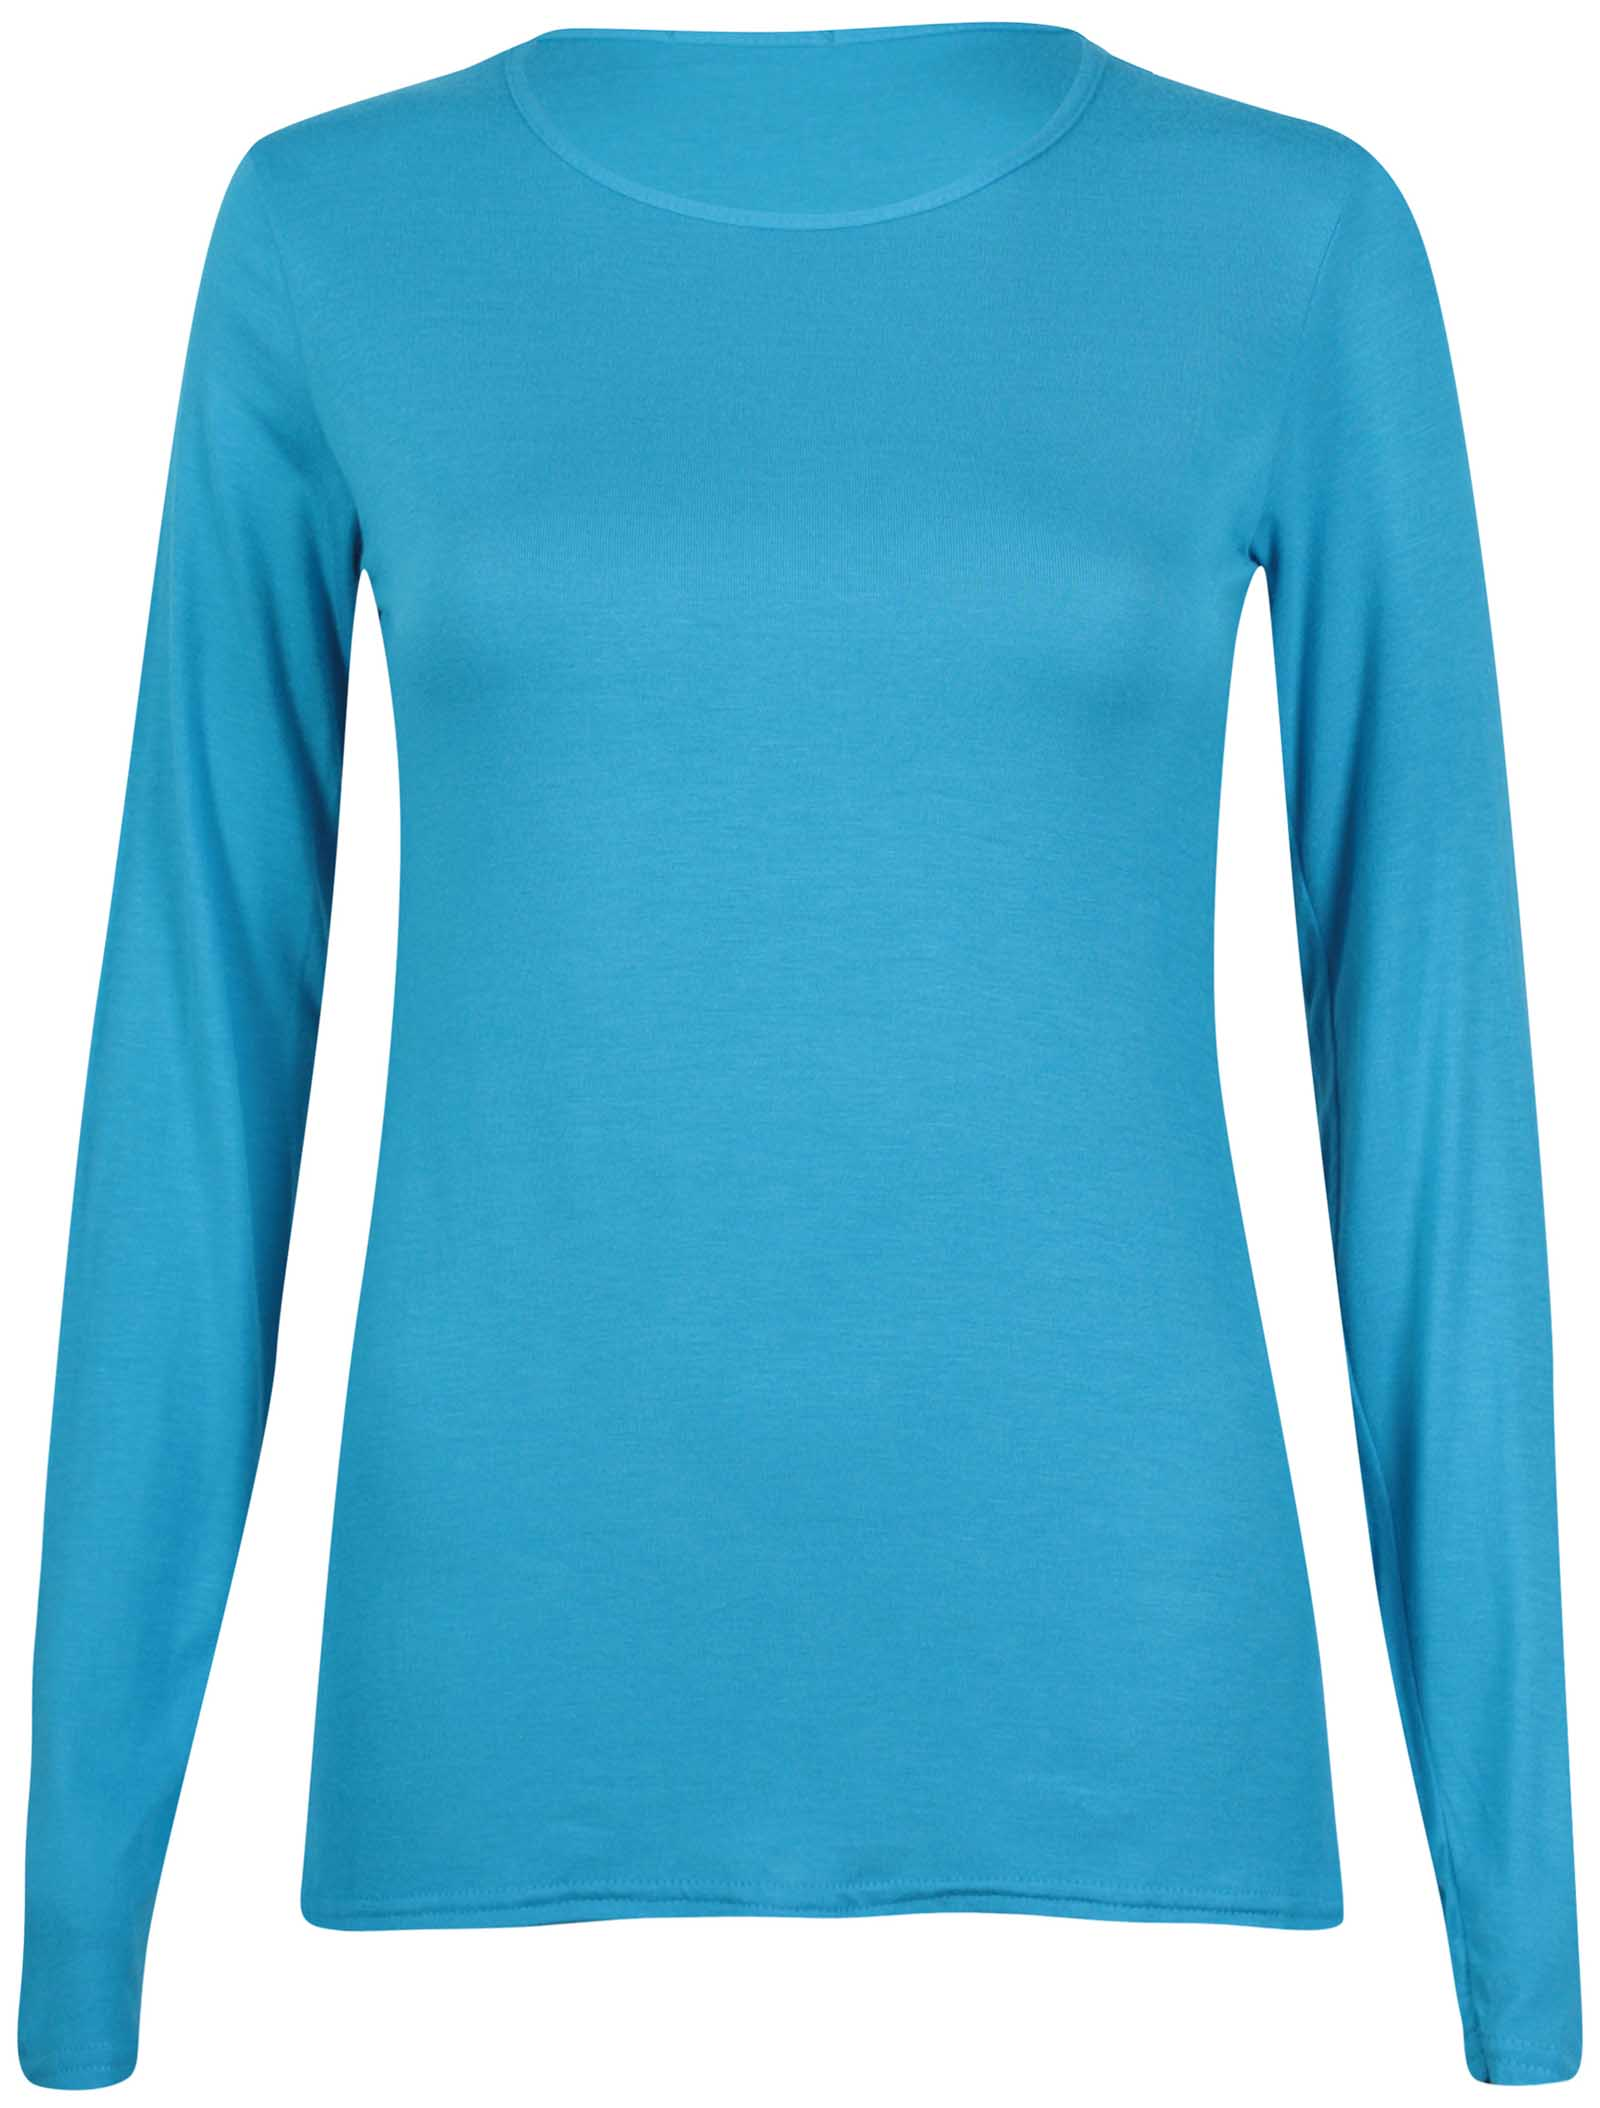 Women's Long Sleeve T-shirts. invalid category id. Women's Long Sleeve T-shirts. Showing 34 of 34 results that match your query. Product - Valentines We're a Purrrfect Pair Black Womens Long Sleeve T-Shirt. Product Image. Price $ 95 - $ Product Title. Valentines We're a Purrrfect Pair Black Womens Long Sleeve T-Shirt.